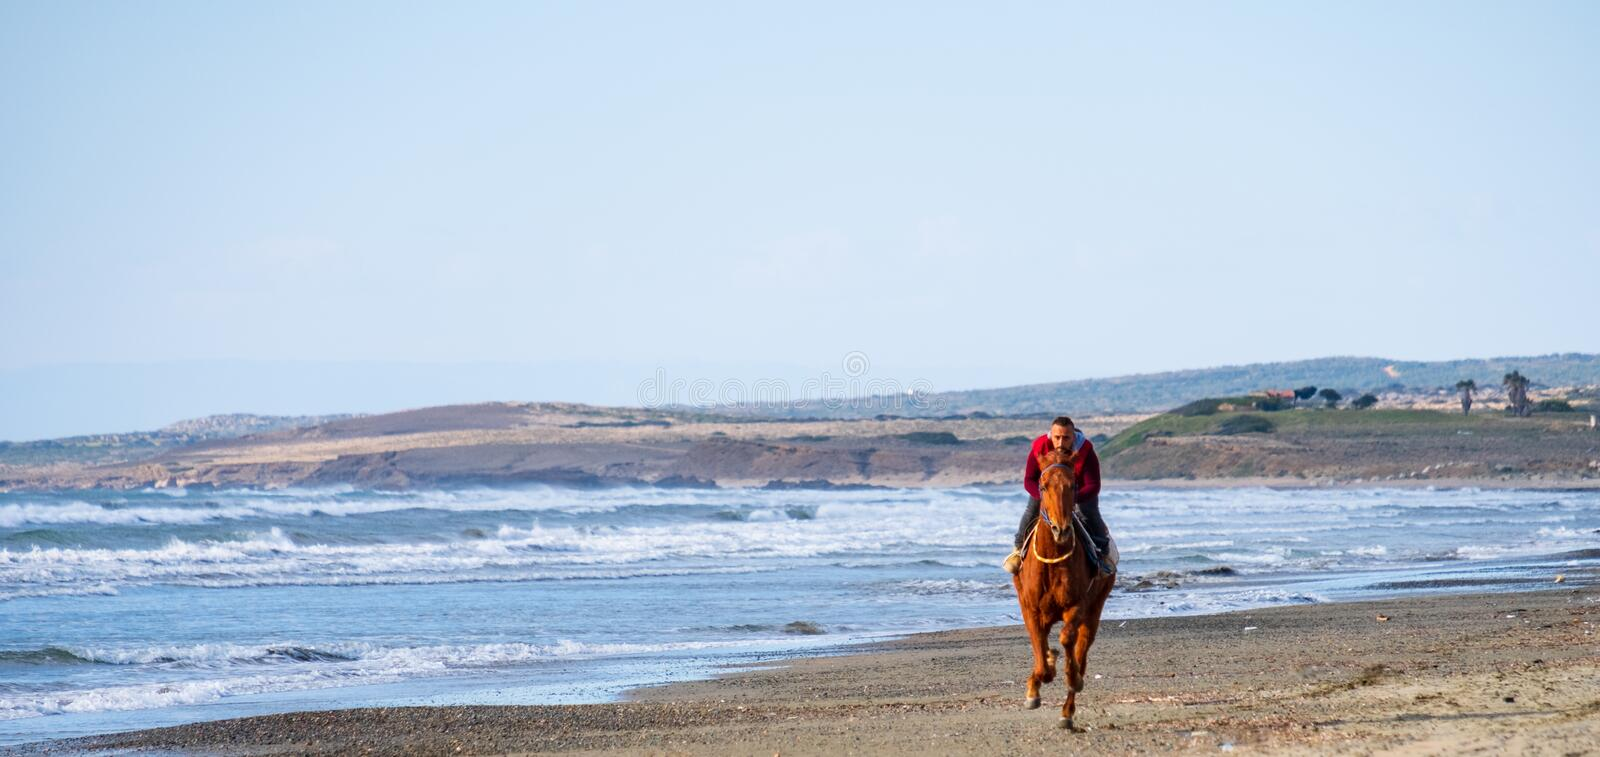 Man riding on a brown galloping horse on Ayia Erini beach in Cyprus against a rough sea royalty free stock photos